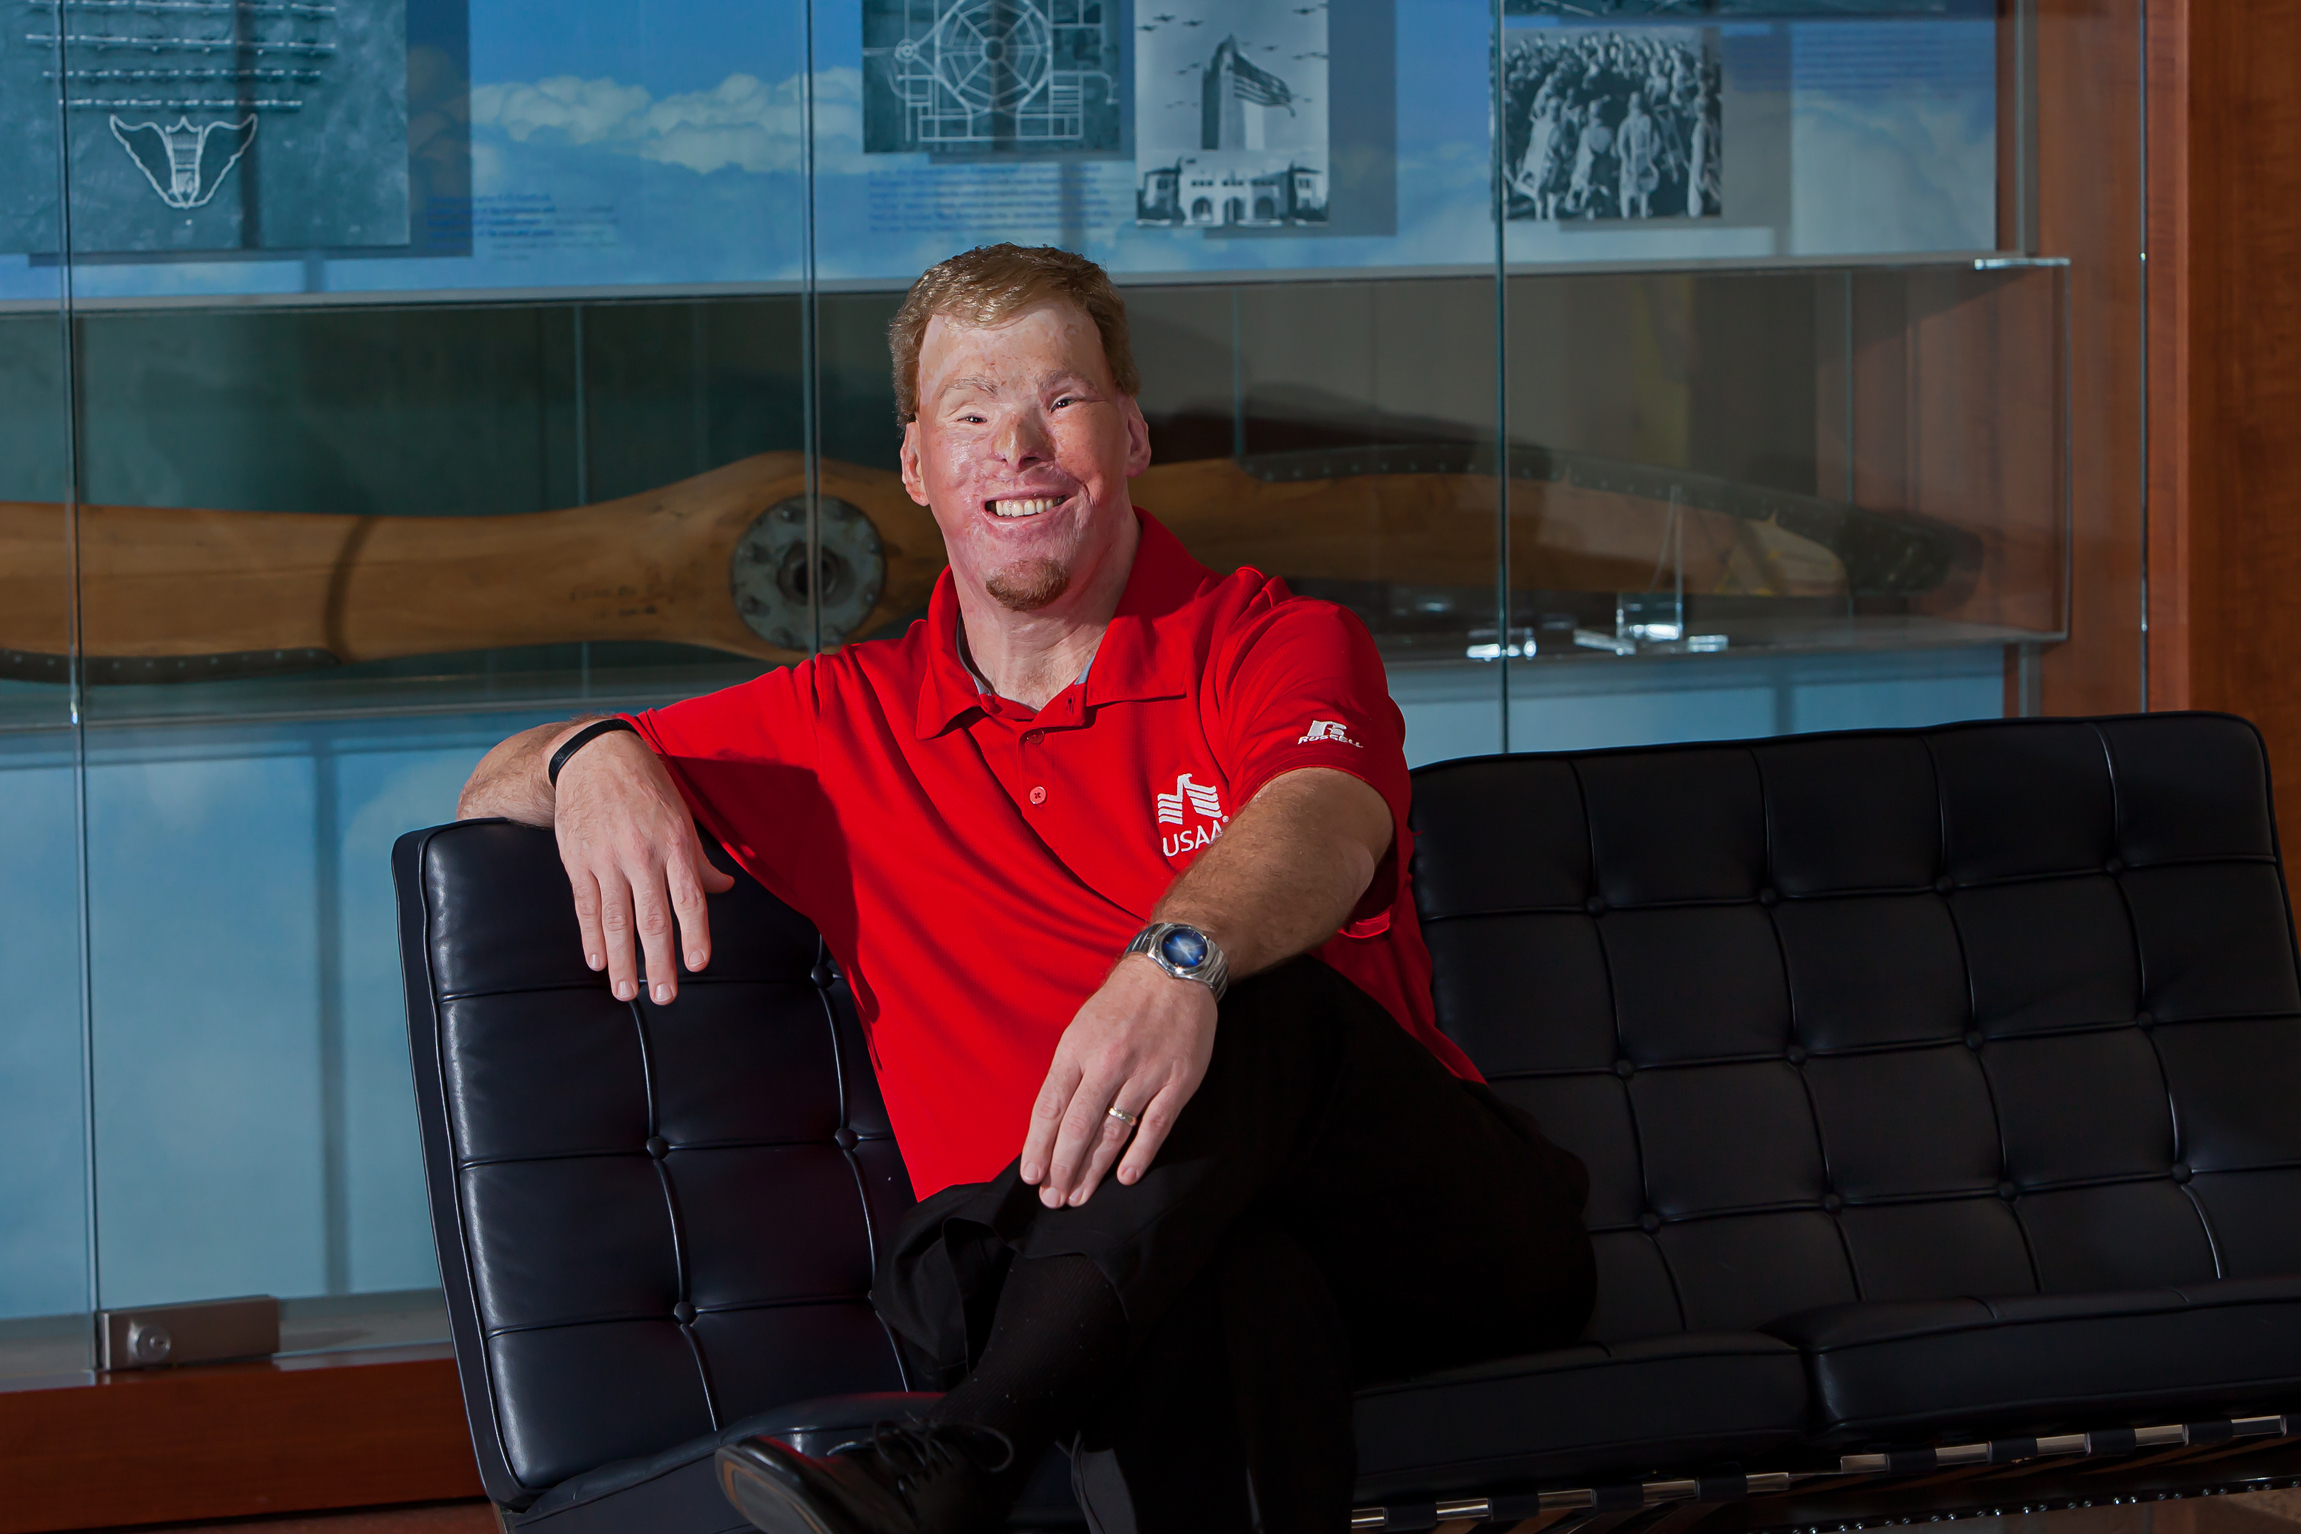 Todd Nelson, USAA employee and US Army veteran